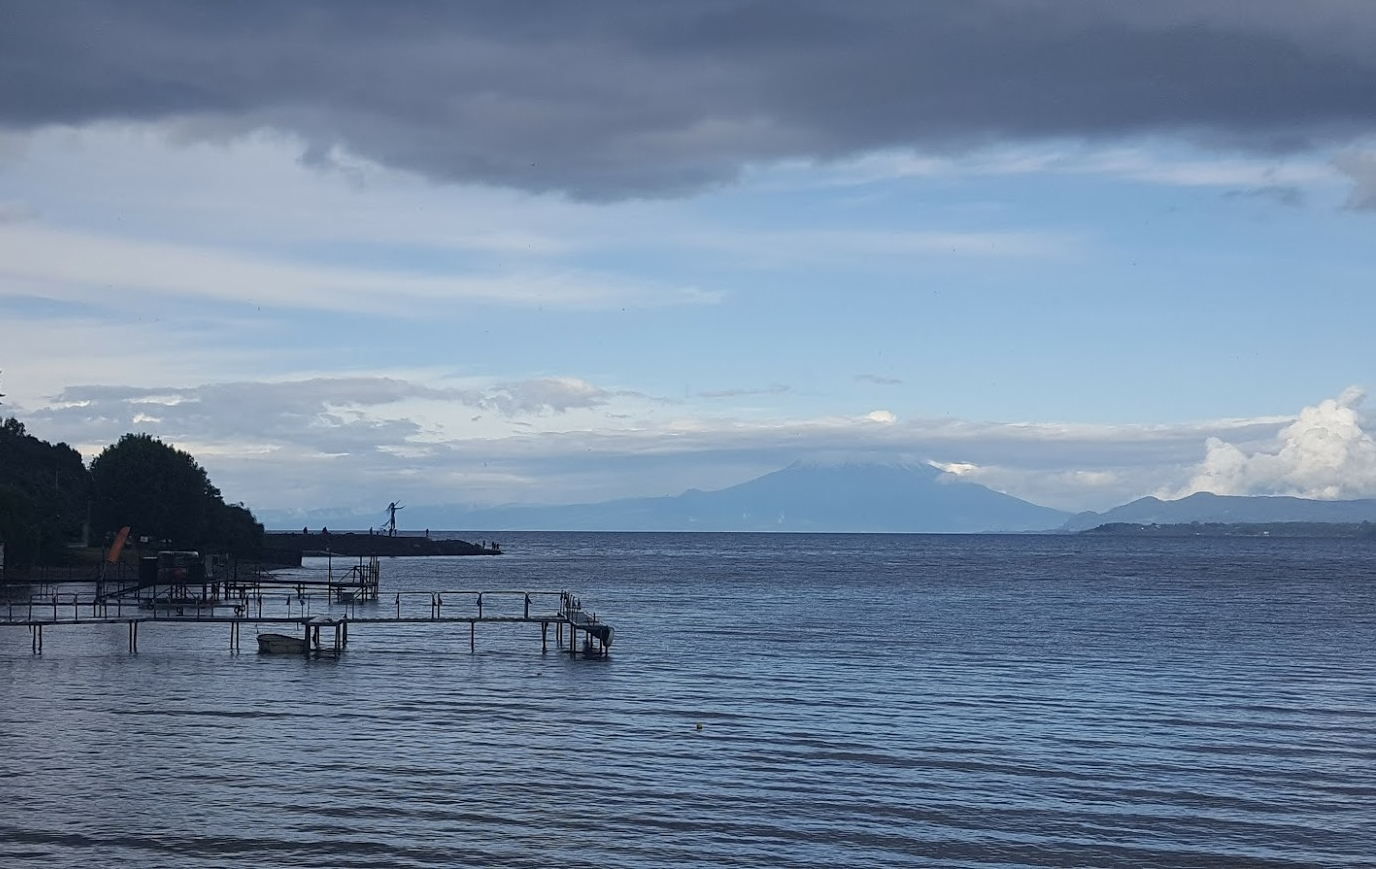 Volcano Osorno, finally showing itself on our last night